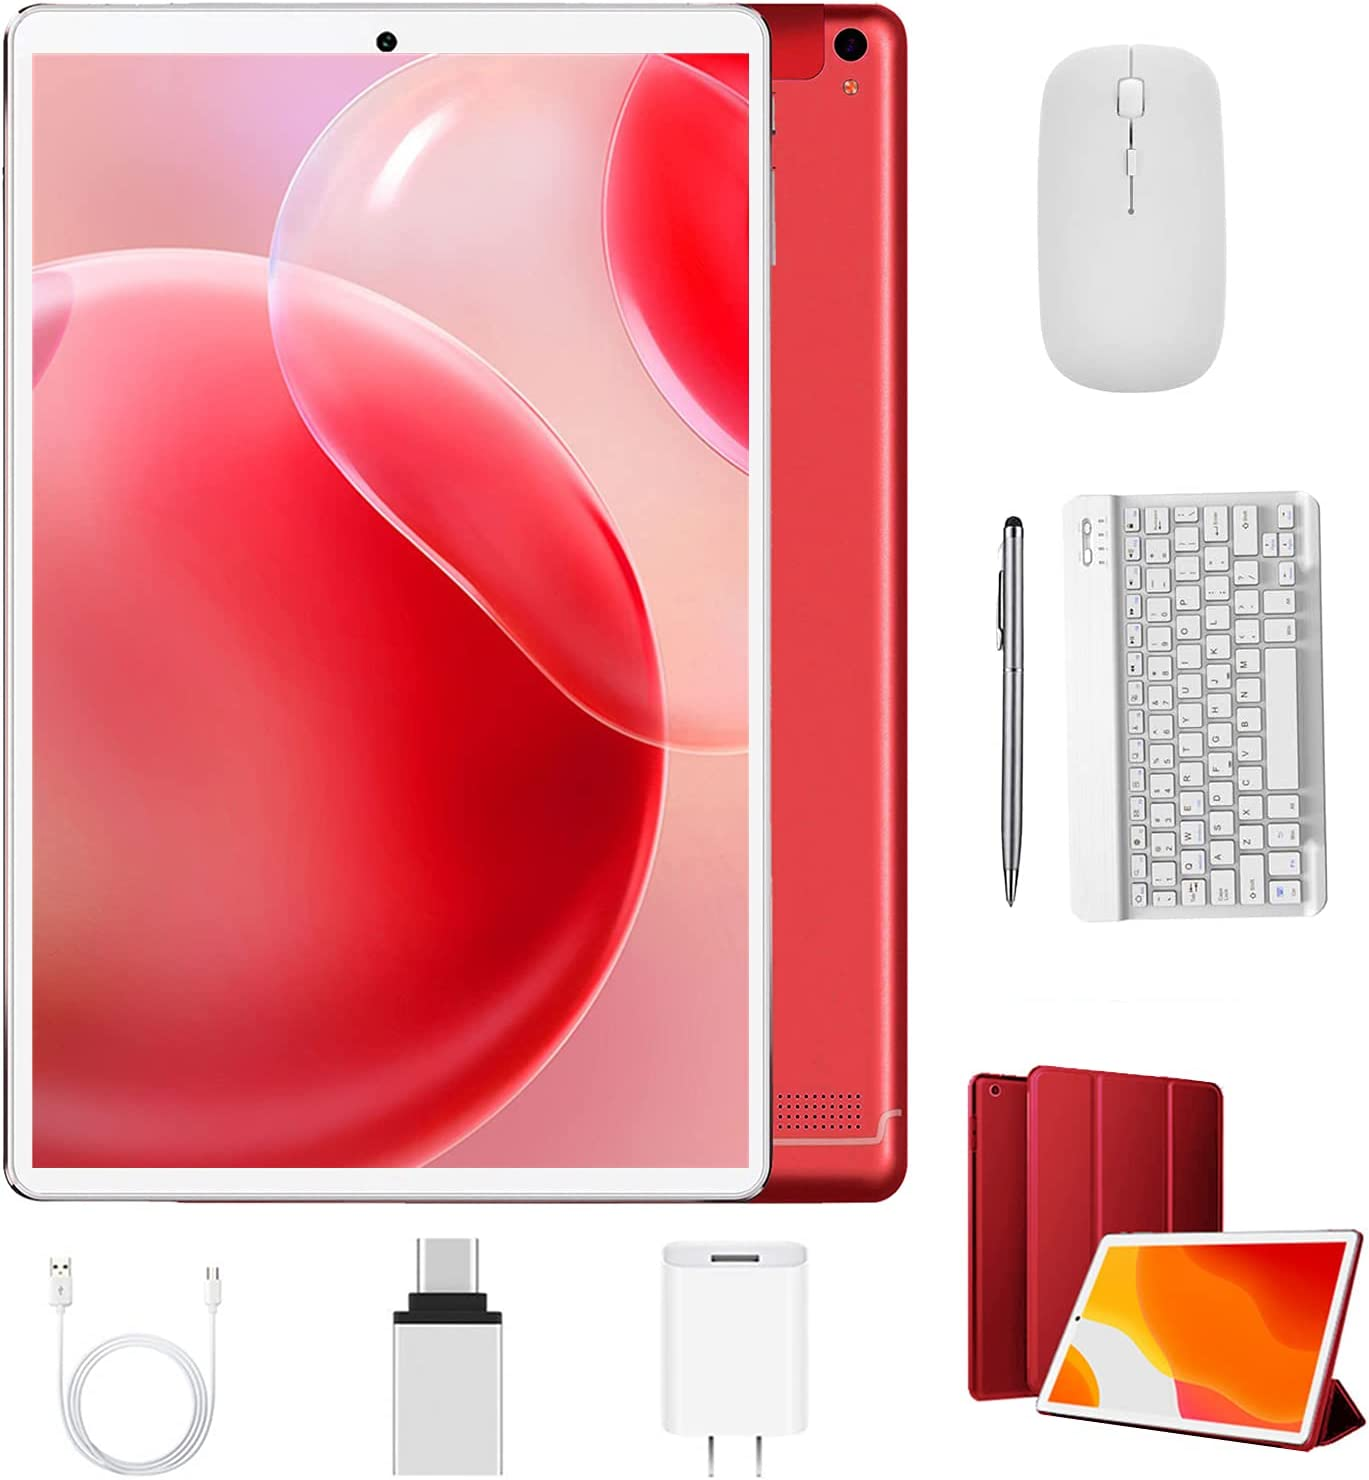 2 in 1 Tablet 10 inch Android 10.0 Tablets with Keyboard Mouse 4GB RAM 64GB ROM 128GB Expand, Dual Camera, Bluetooth, Google Certified GMS Tablet PC (10'', WiFi Only, Red)